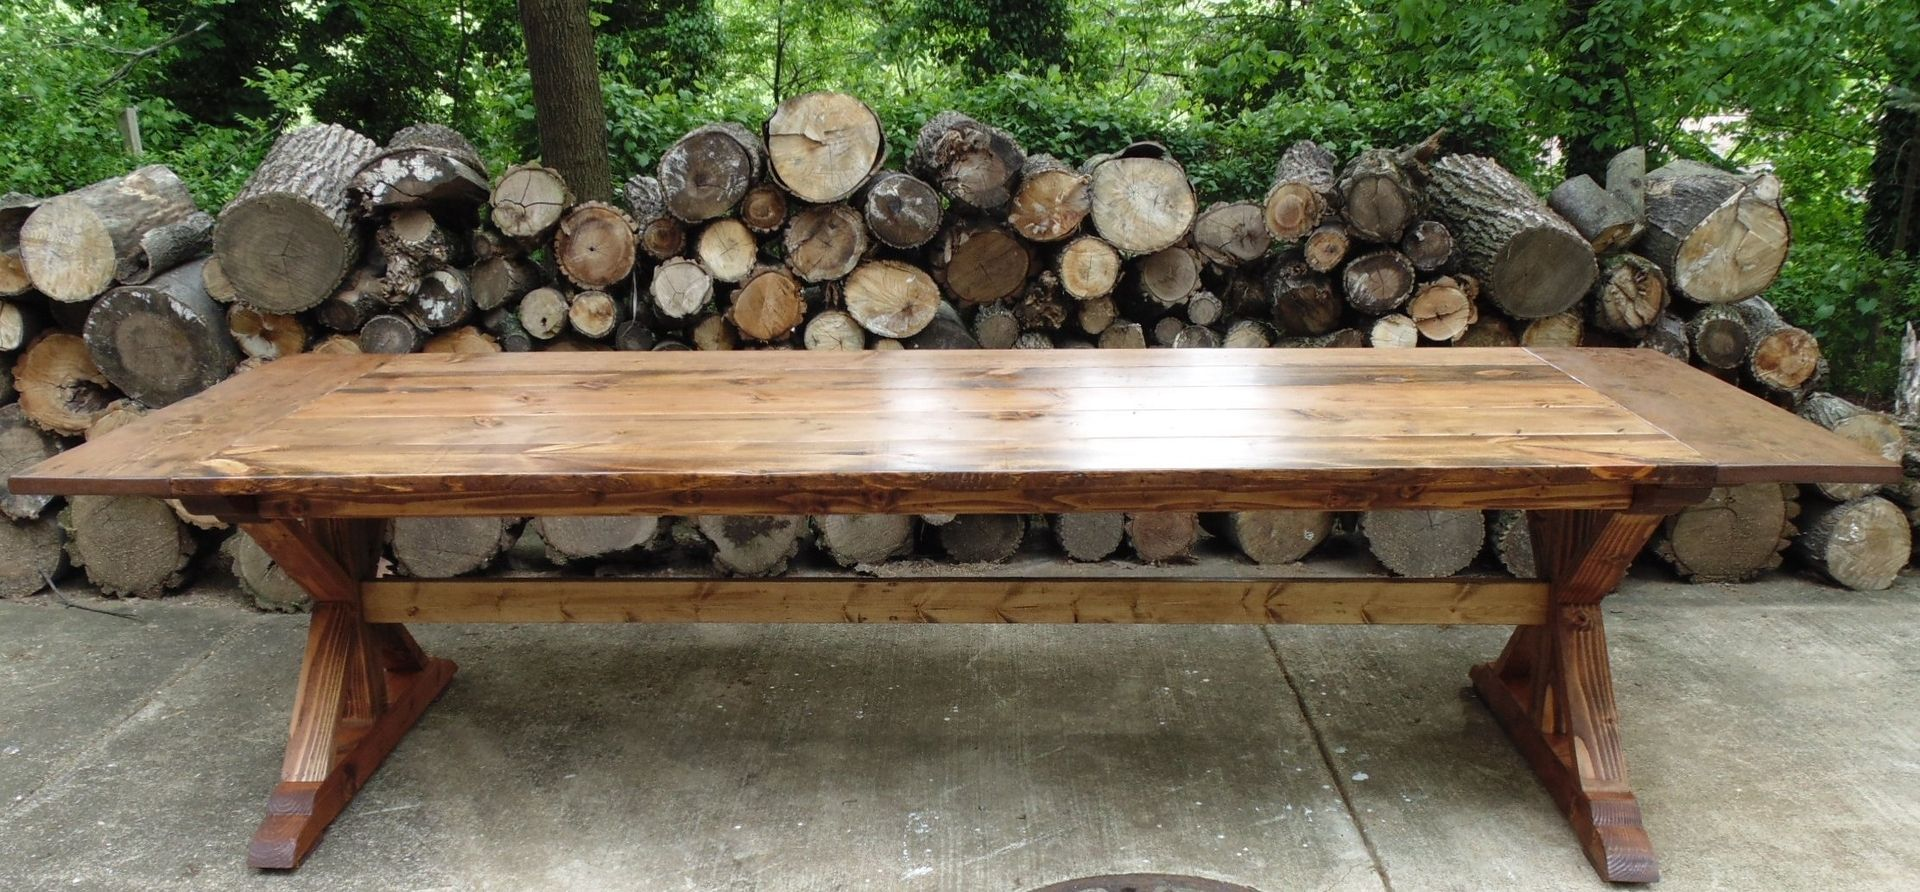 Handmade Reclaimed Wood Trestle X Style Farmhouse Table By Wonderland Woodworks